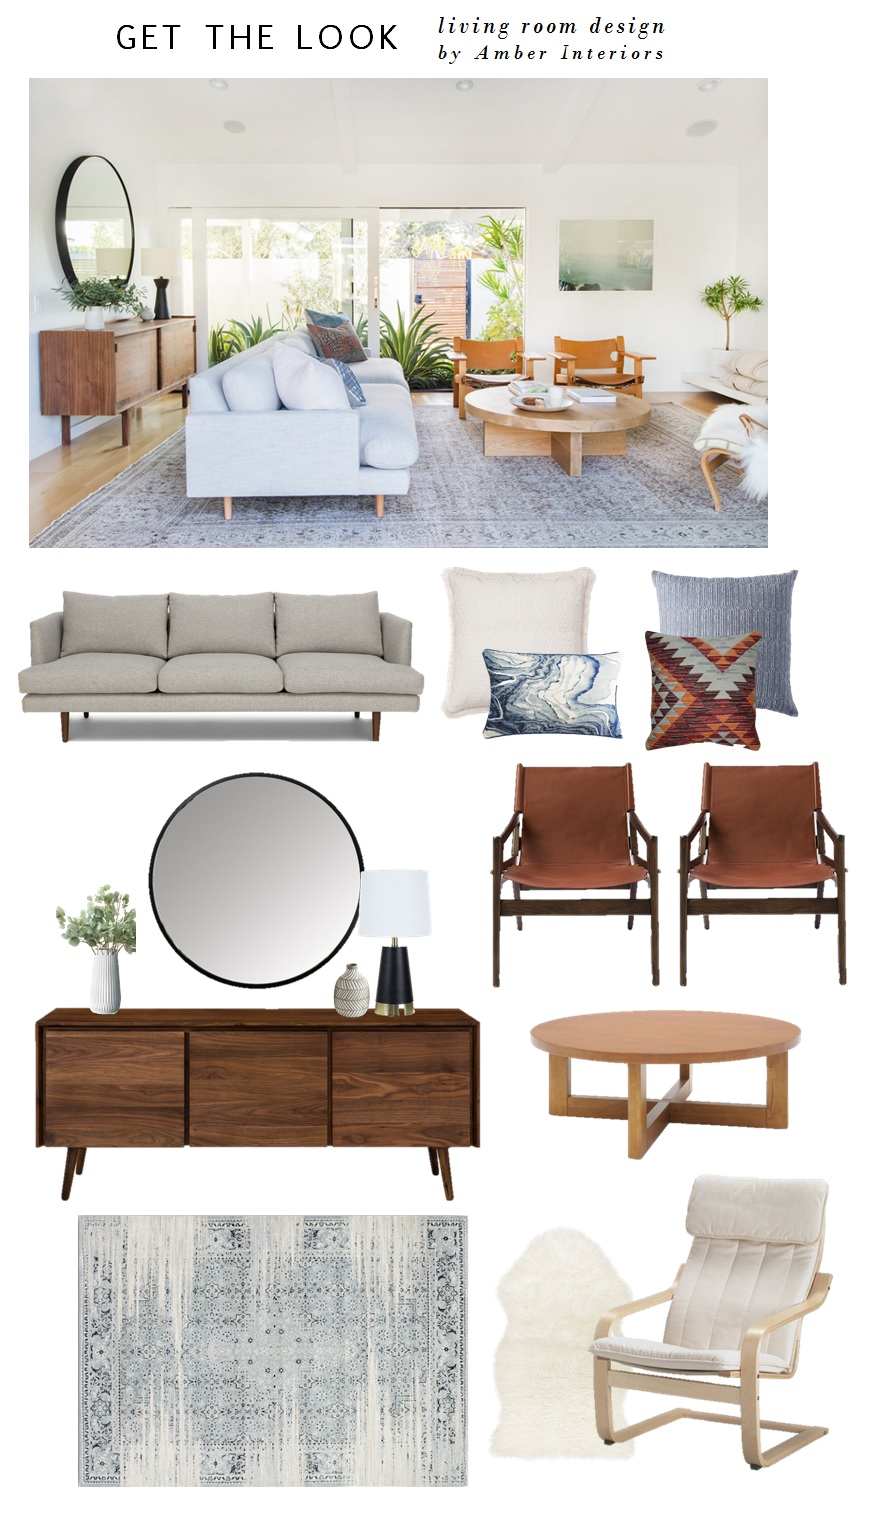 SOFA  |  COFFEE TABLE  |  BUFFET  |  LEATHER SLING CHAIRS  |  WHITE ARM CHAIR  |  FUZZY RUG  |  AREA RUG  |  ROUND MIRROR  |  BLACK LAMP  |  SMALL VASE  |  TALL VASE  | PILLOWS:  WHITE SQUARE ,  BLUE SQUARE ,   BLUE MARBLE ,  KILIM